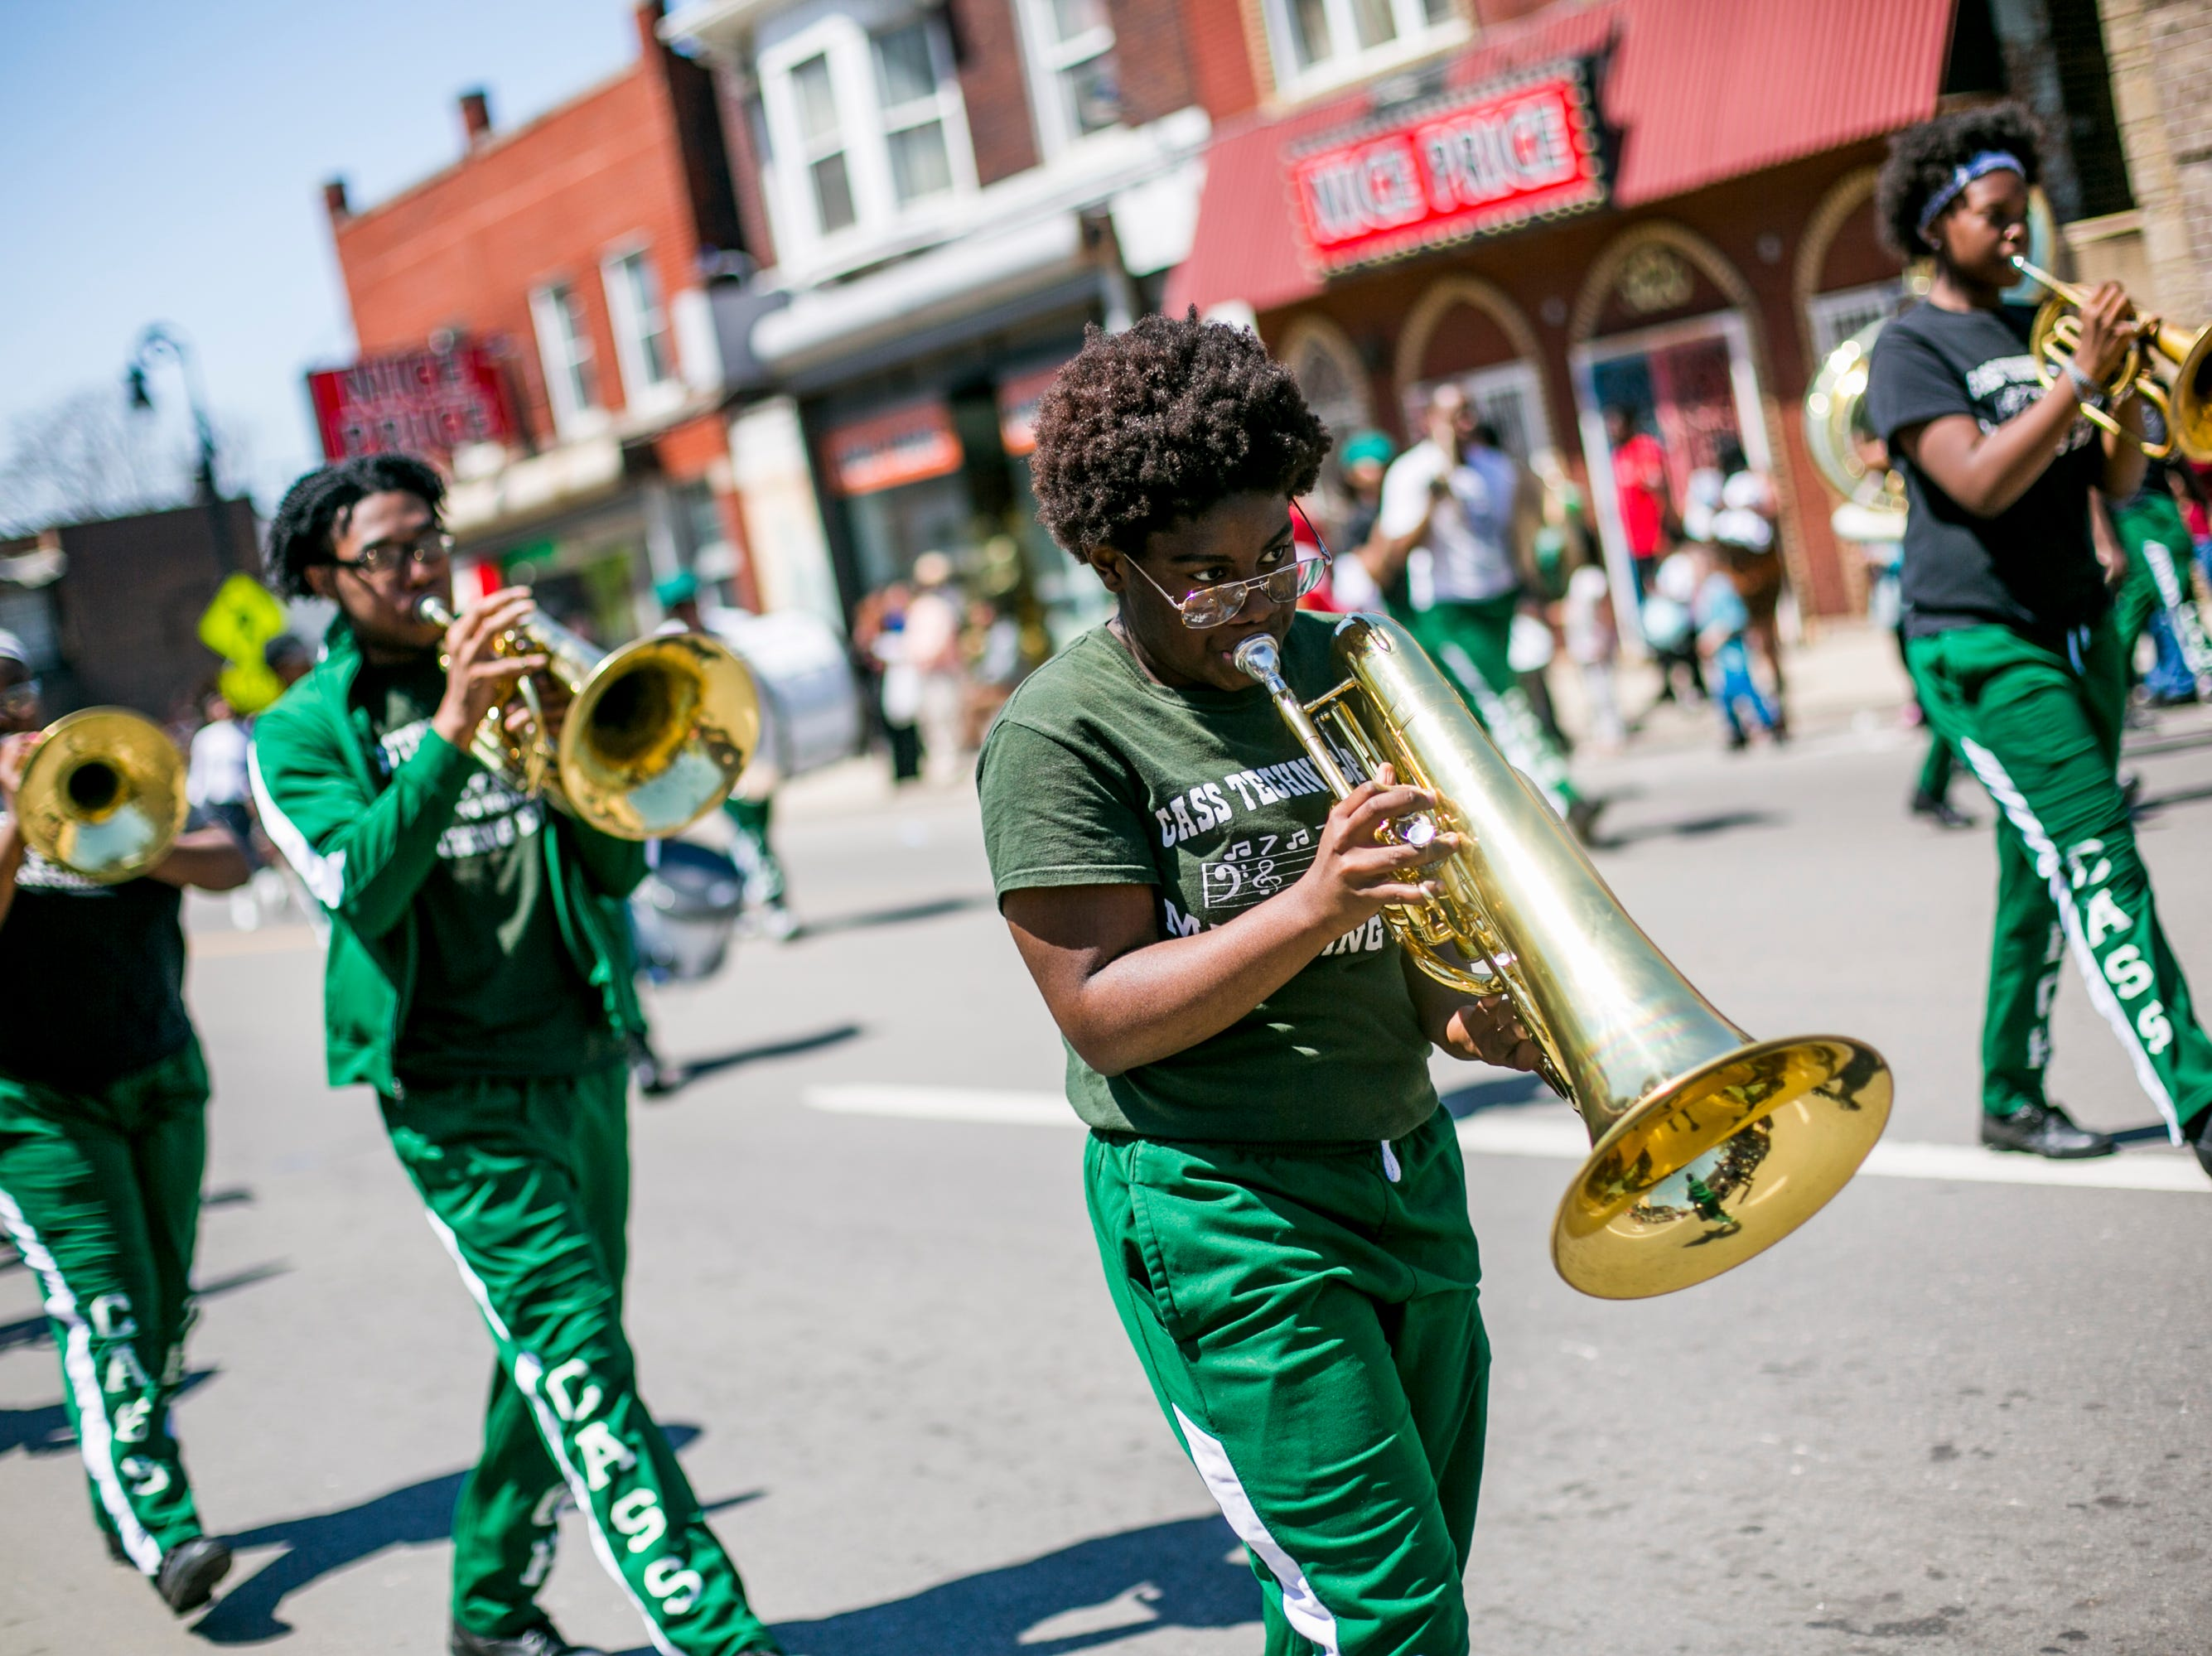 Members of the Cass Tech High School marching band perform in the 55th Annual Cinco de Mayo parade.